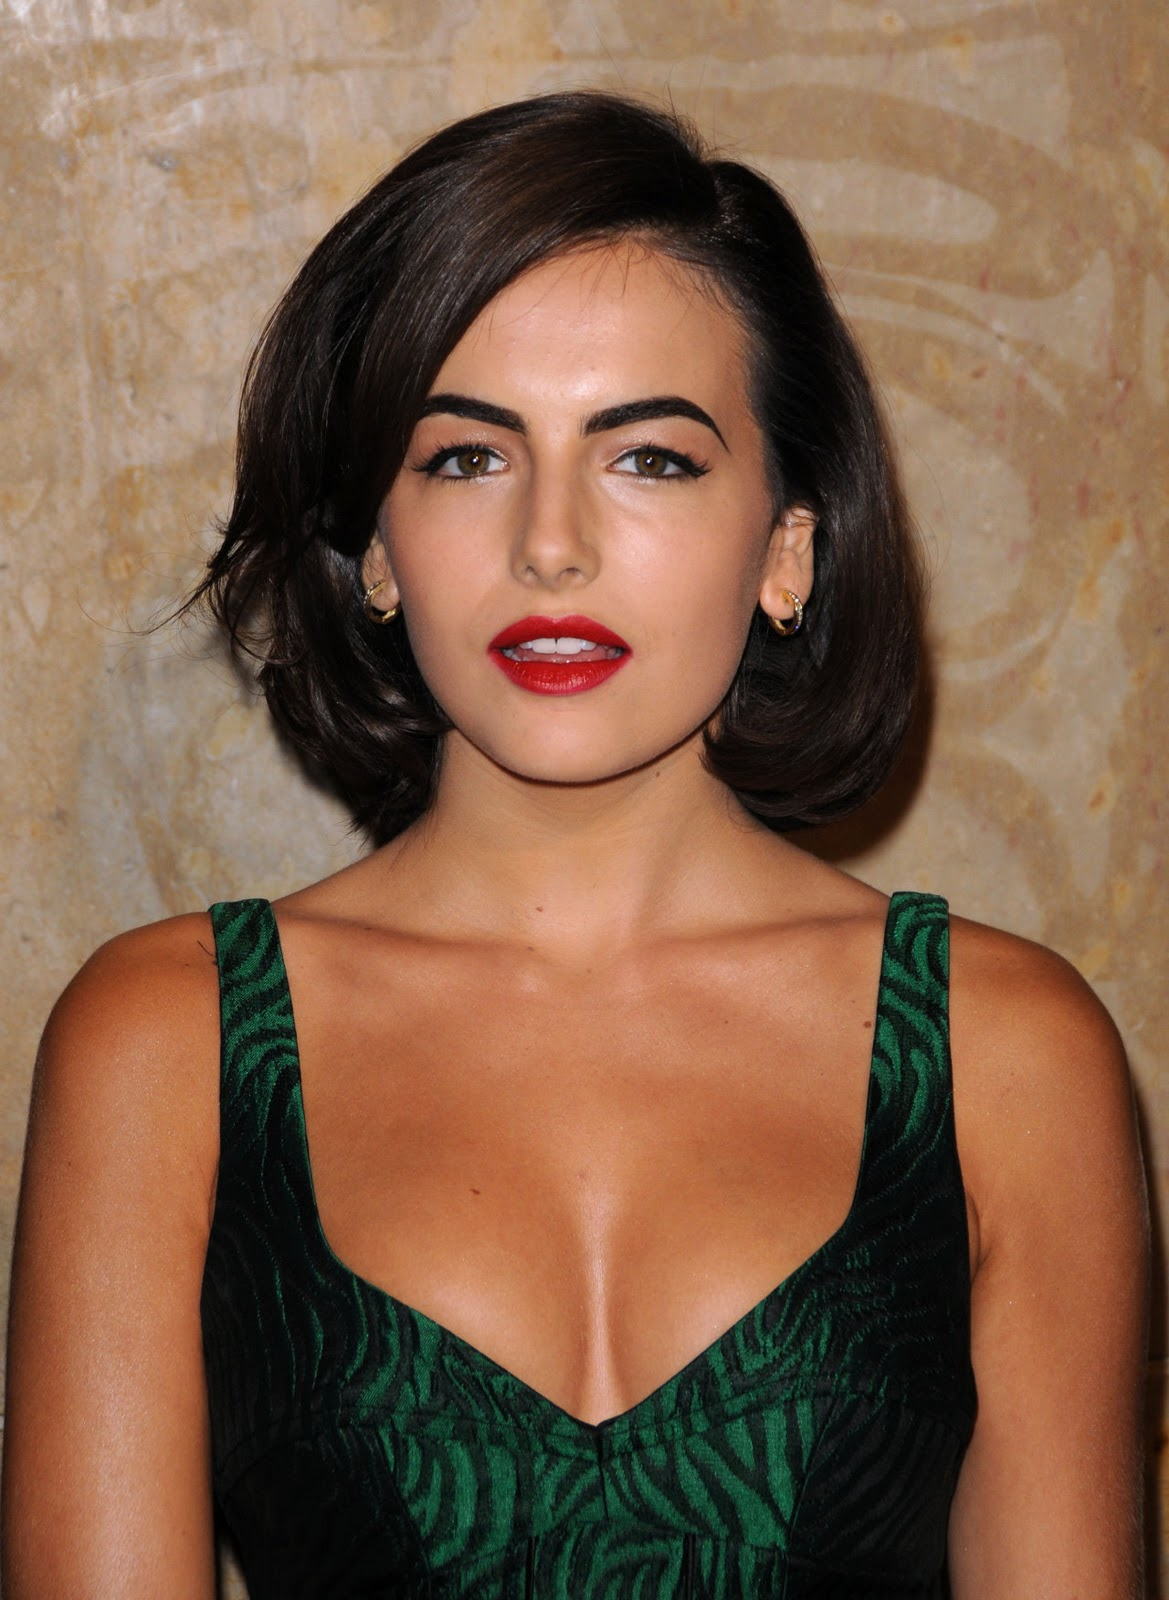 Camilla Belle Romance Hairstyles Pictures, Long Hairstyle 2013, Hairstyle 2013, New Long Hairstyle 2013, Celebrity Long Romance Hairstyles 2122